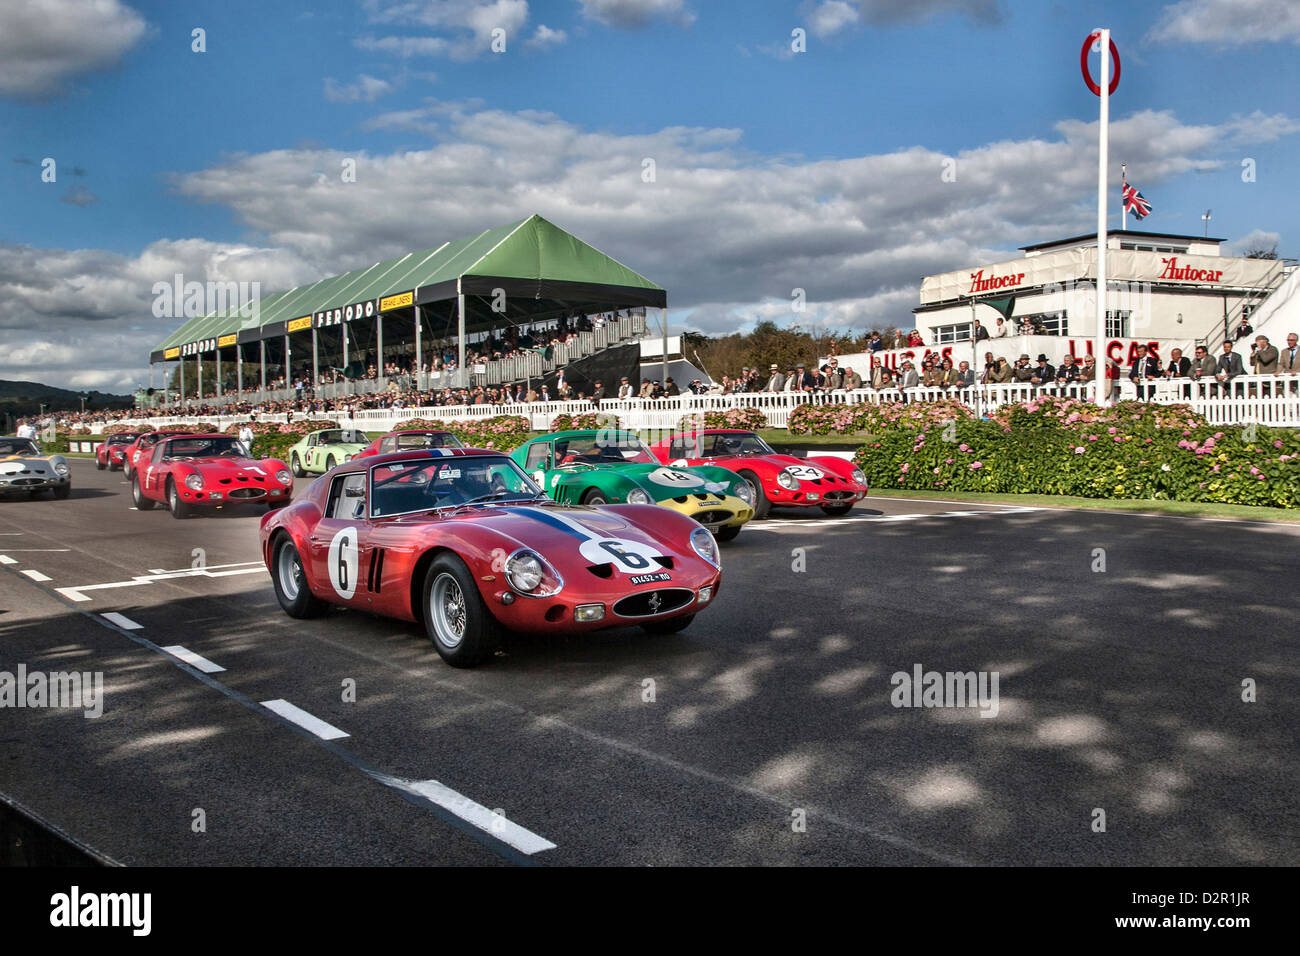 Goodwood Revival Start des Rennens Ferarri 250 GTO Stockbild